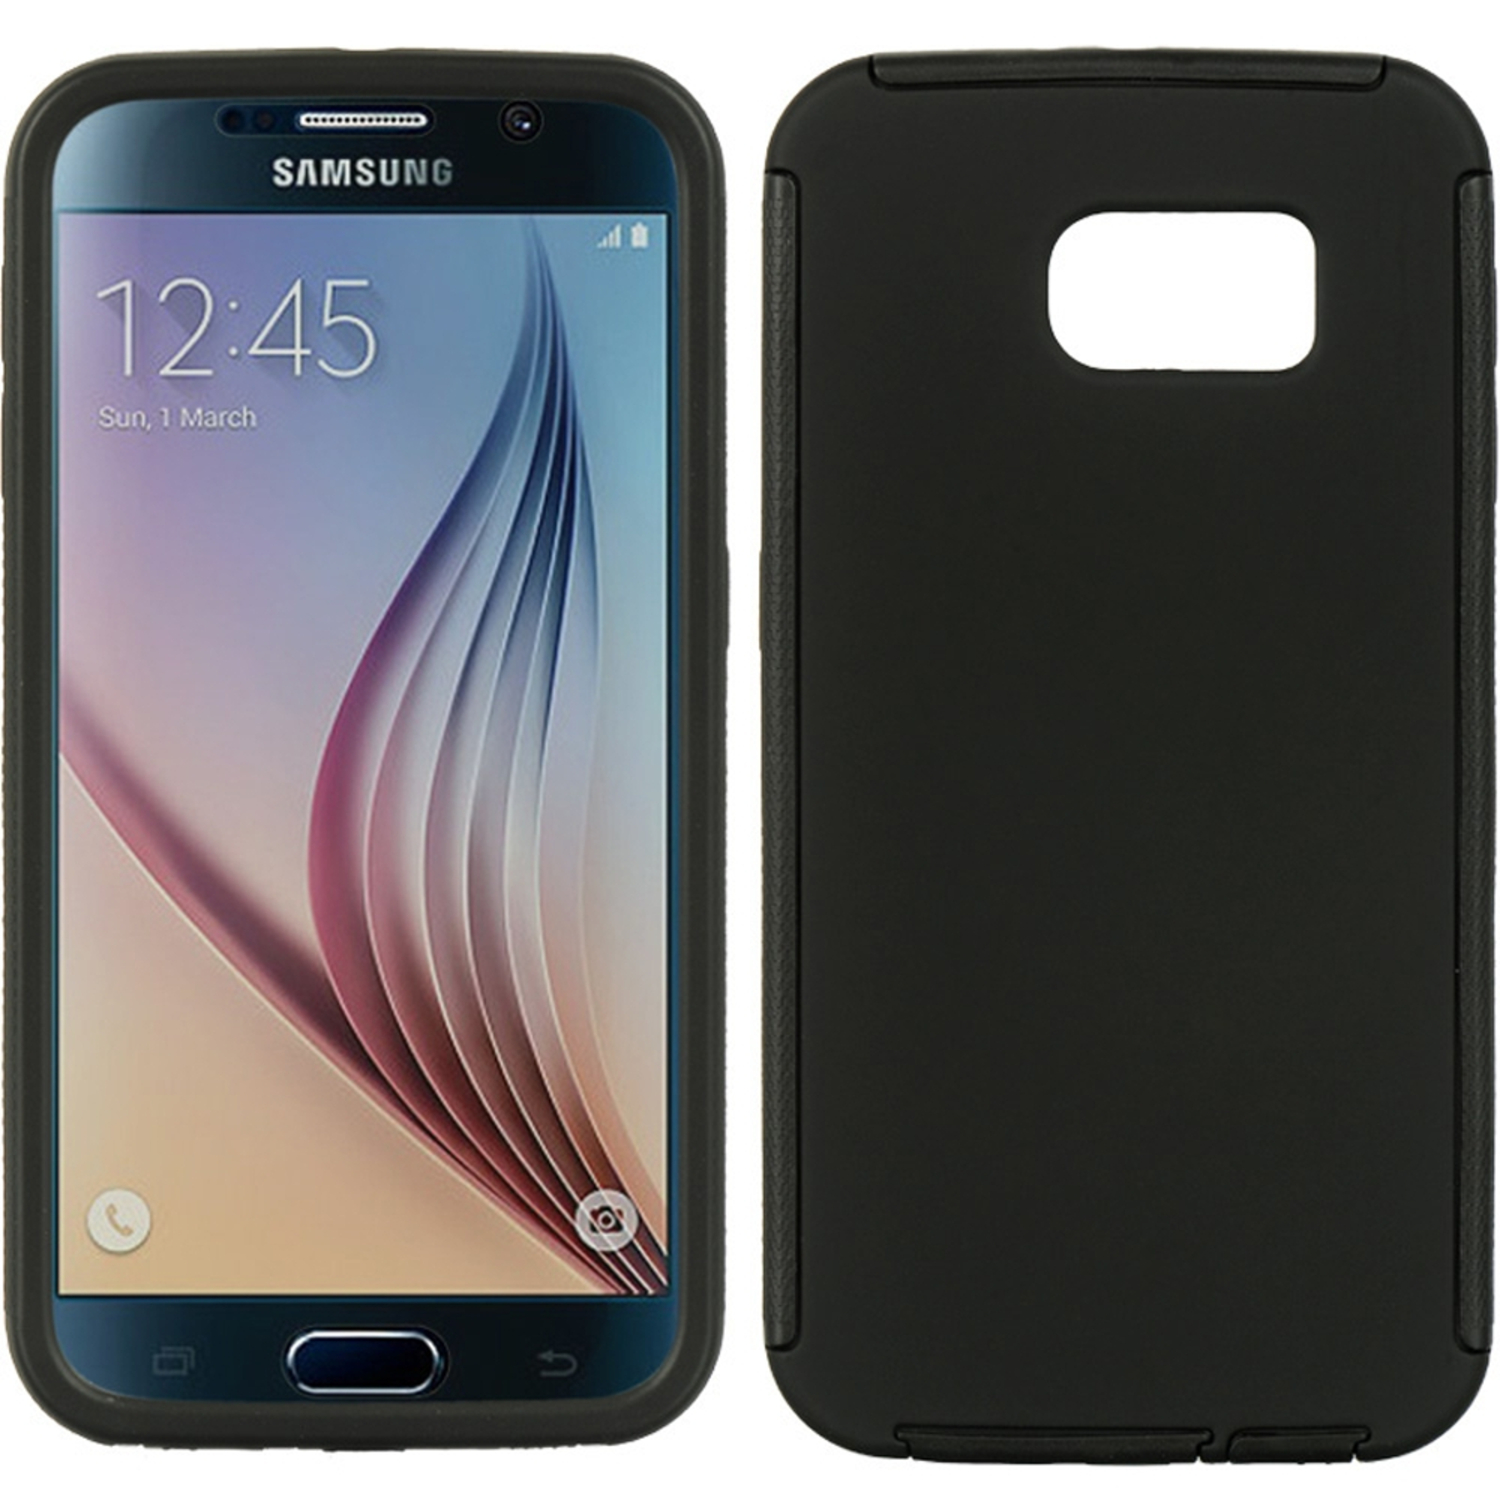 Samsung Galaxy S6 Case, by Insten Wrap Up TPU Rubber Candy Skin Case Cover With Screen Protector For Samsung Galaxy S6 SM-G920